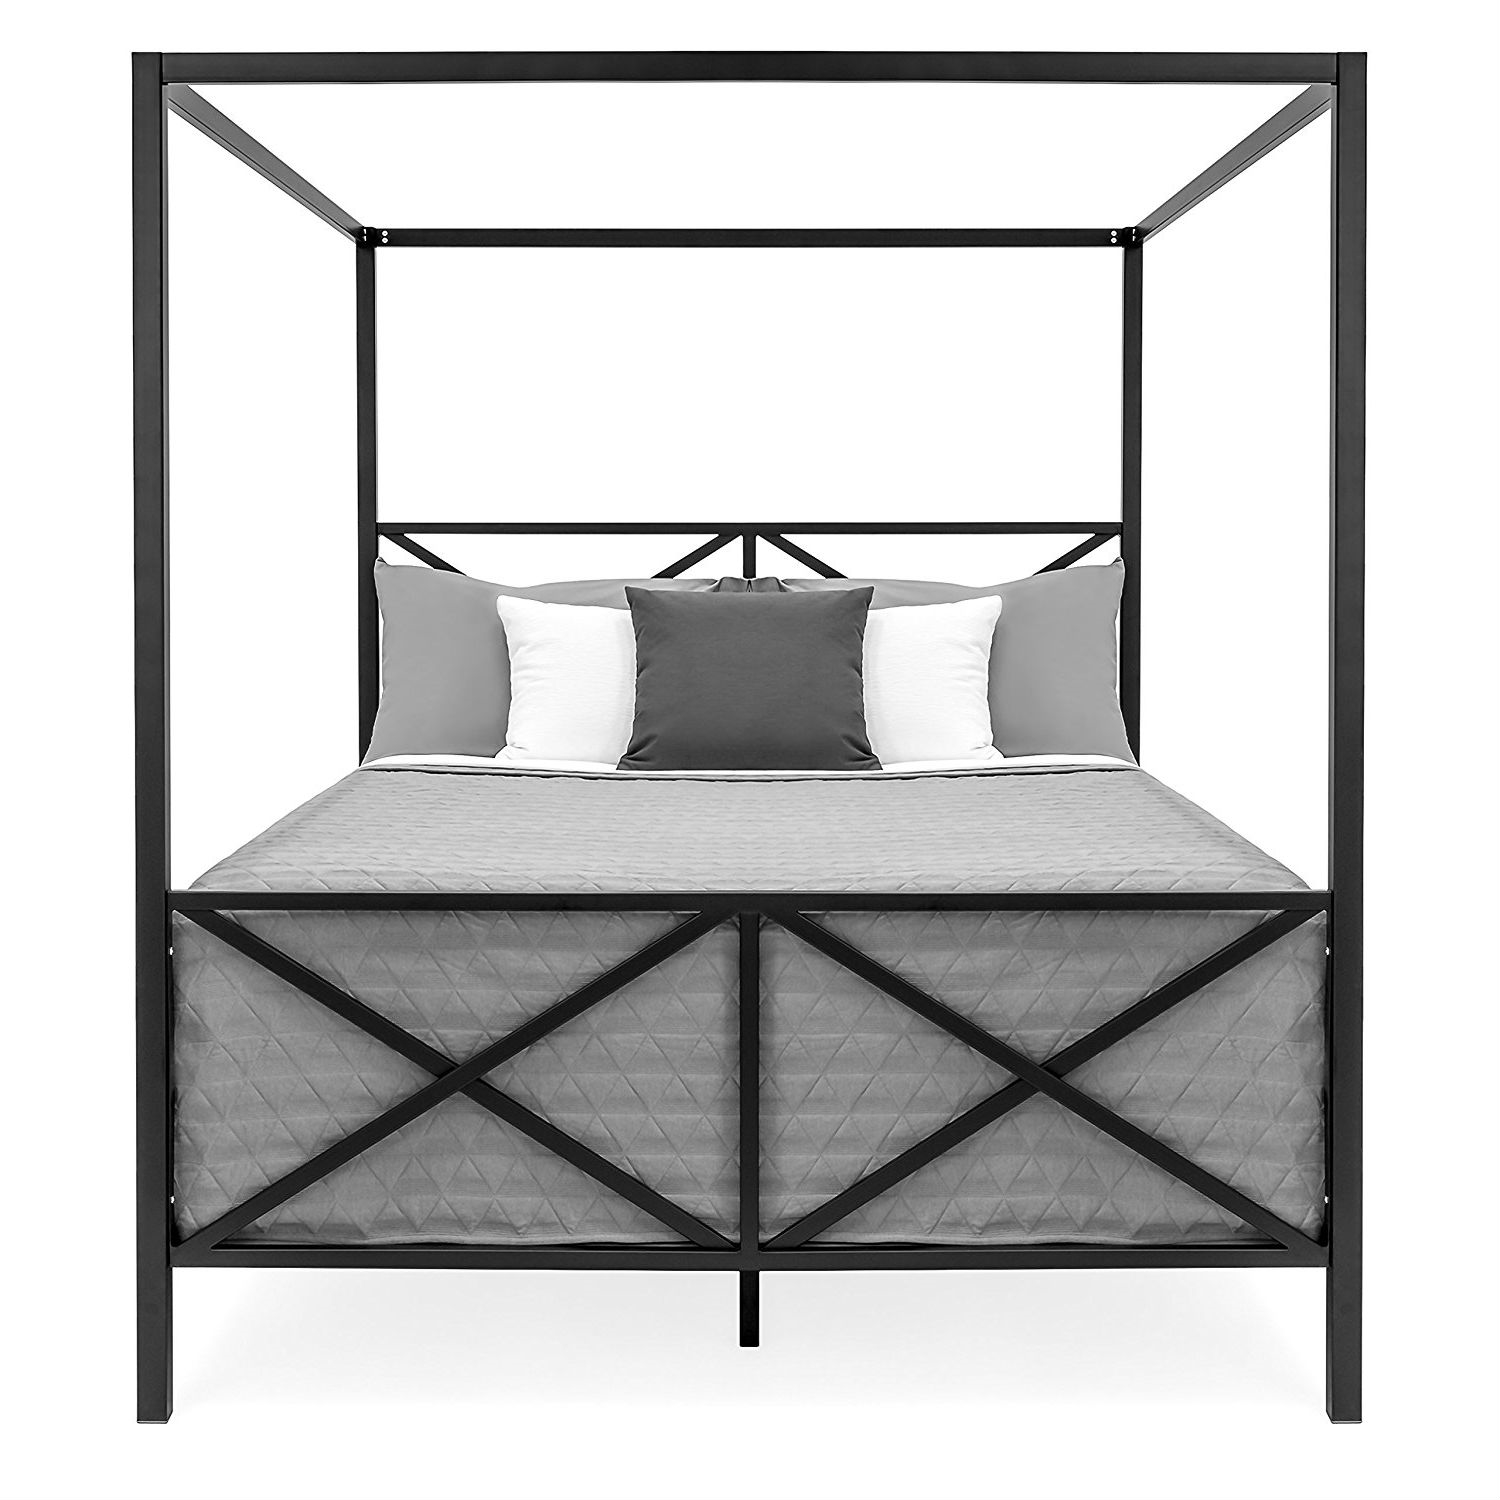 Queen Size 4 Post Canopy Bed Frame In